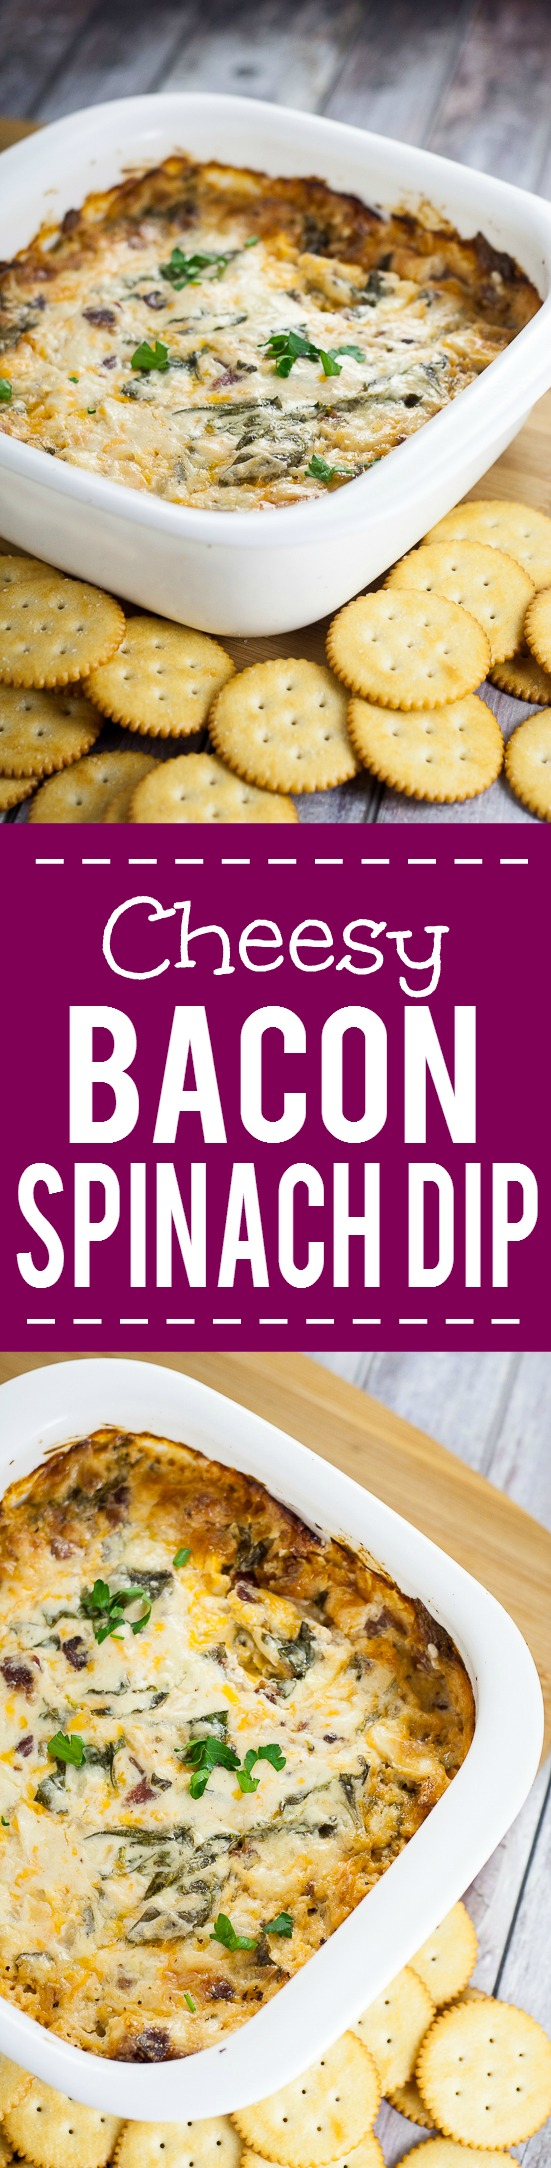 Cheesy Bacon Spinach Dip recipe - Quick, easy, and especially tasty, this Cheesy Bacon Spinach Dip recipe takes just 30 minutes to make, can be made ahead, and is a perfect cozy dip for your next party or gathering! Great easy appetizer recipe for a crowd!